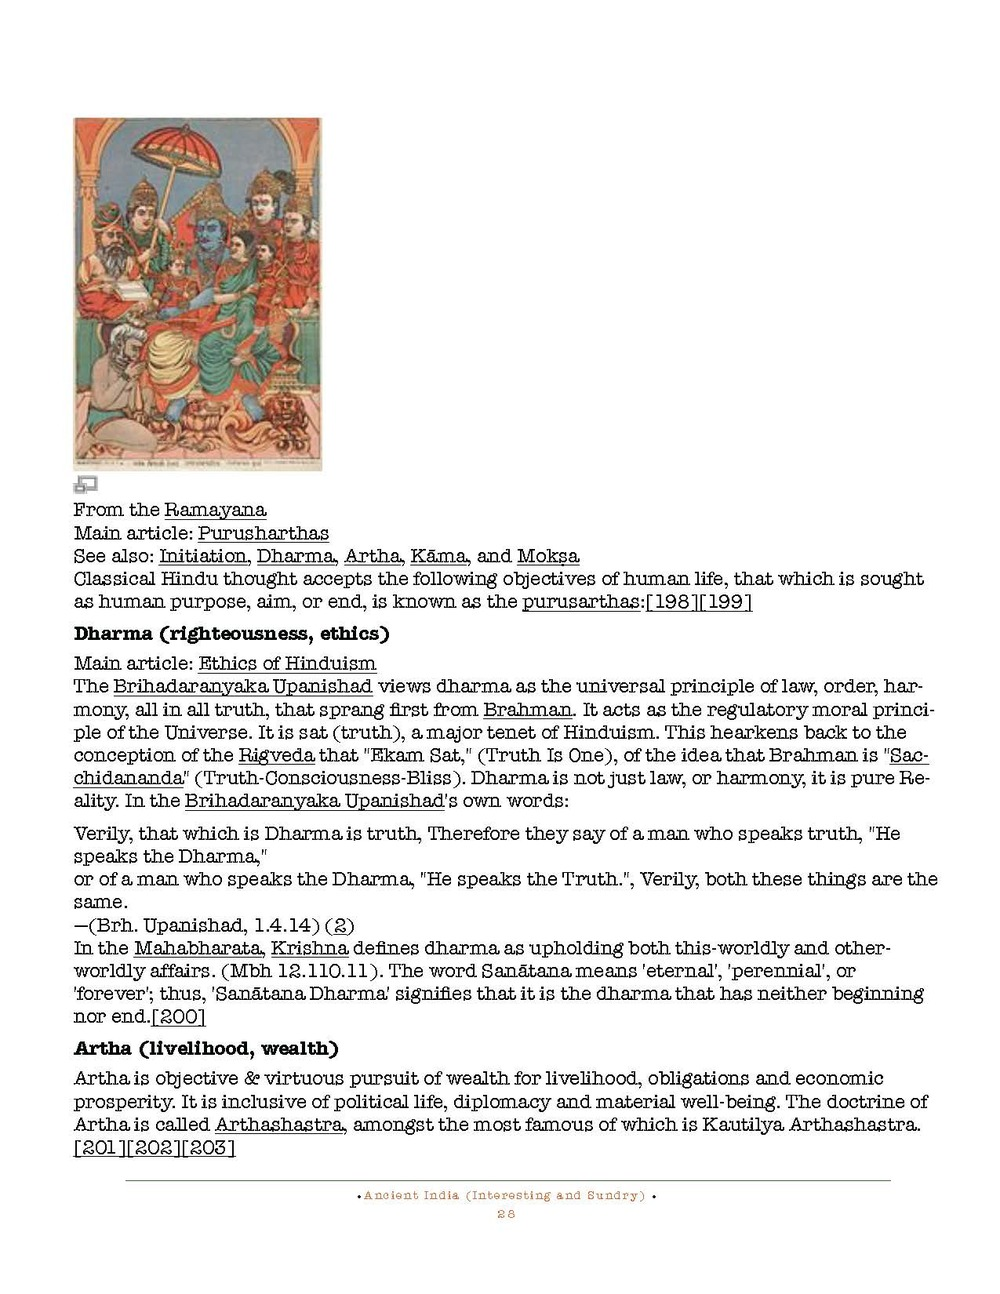 HOCE- Ancient India Notes (Other Interesting and Sundry)_Page_028.jpg